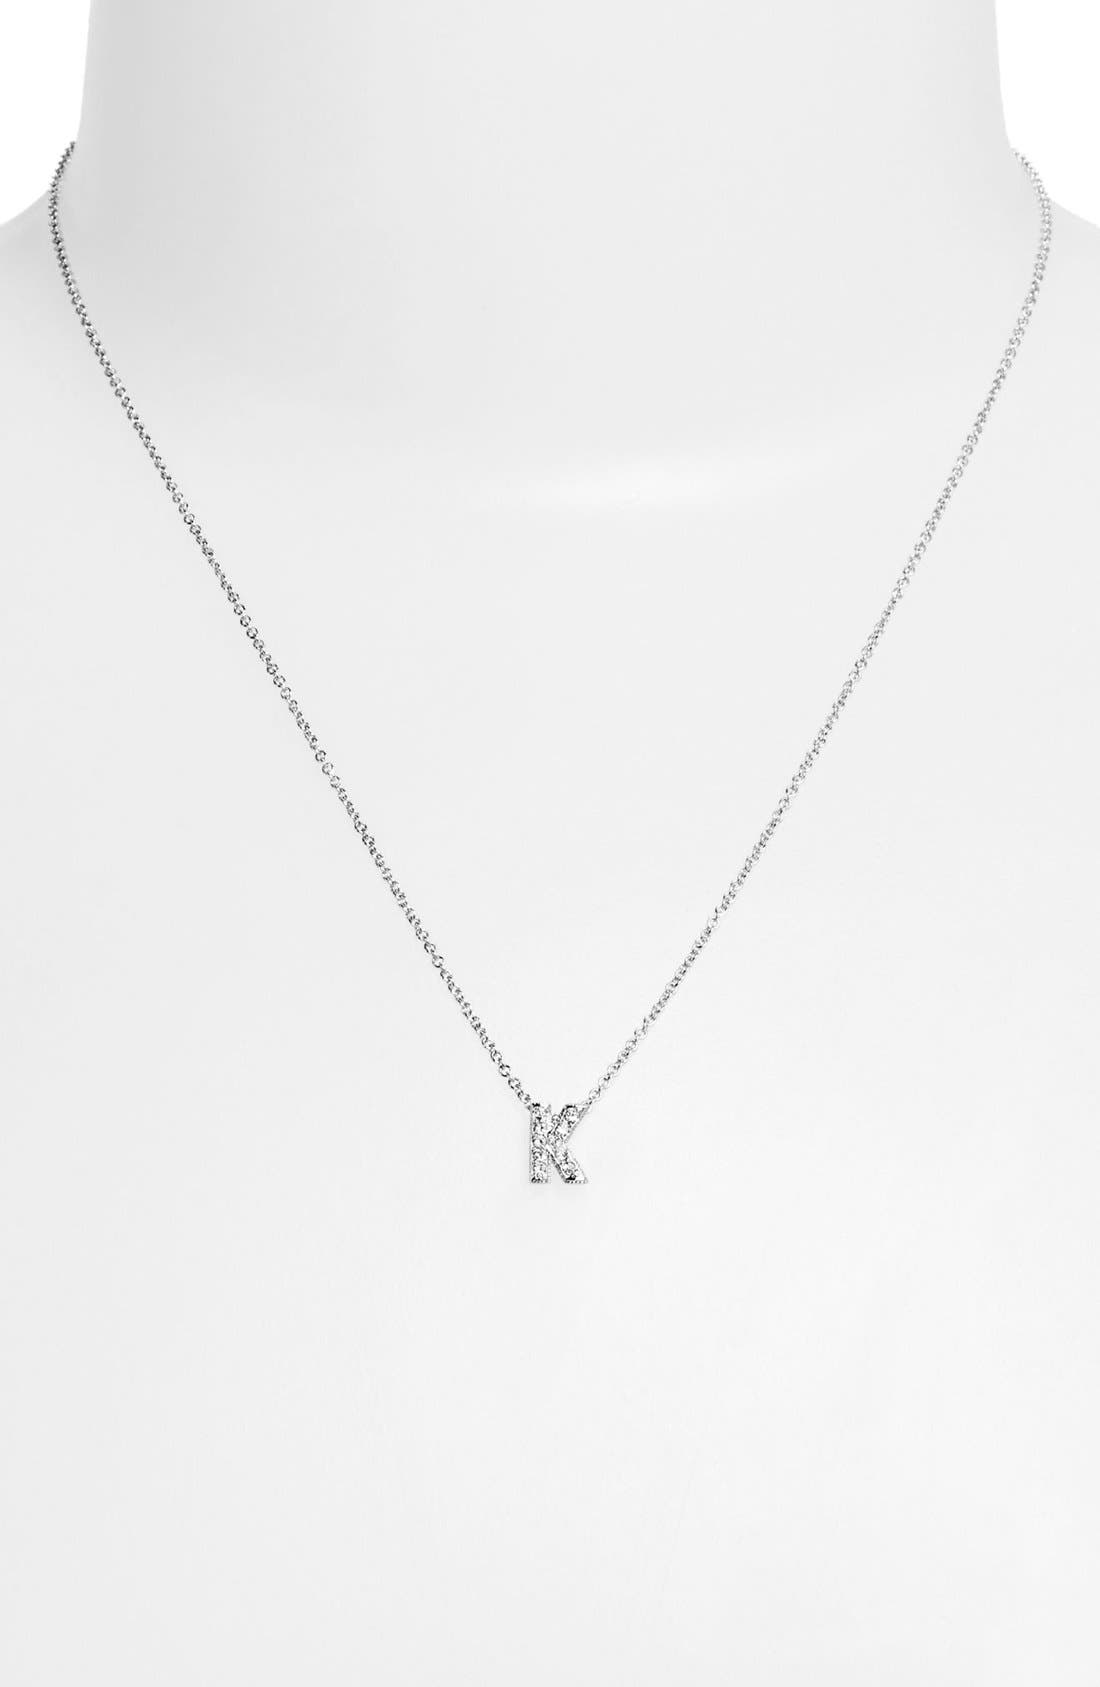 Alternate Image 1 Selected - Nadri Boxed Initial Pendant Necklace